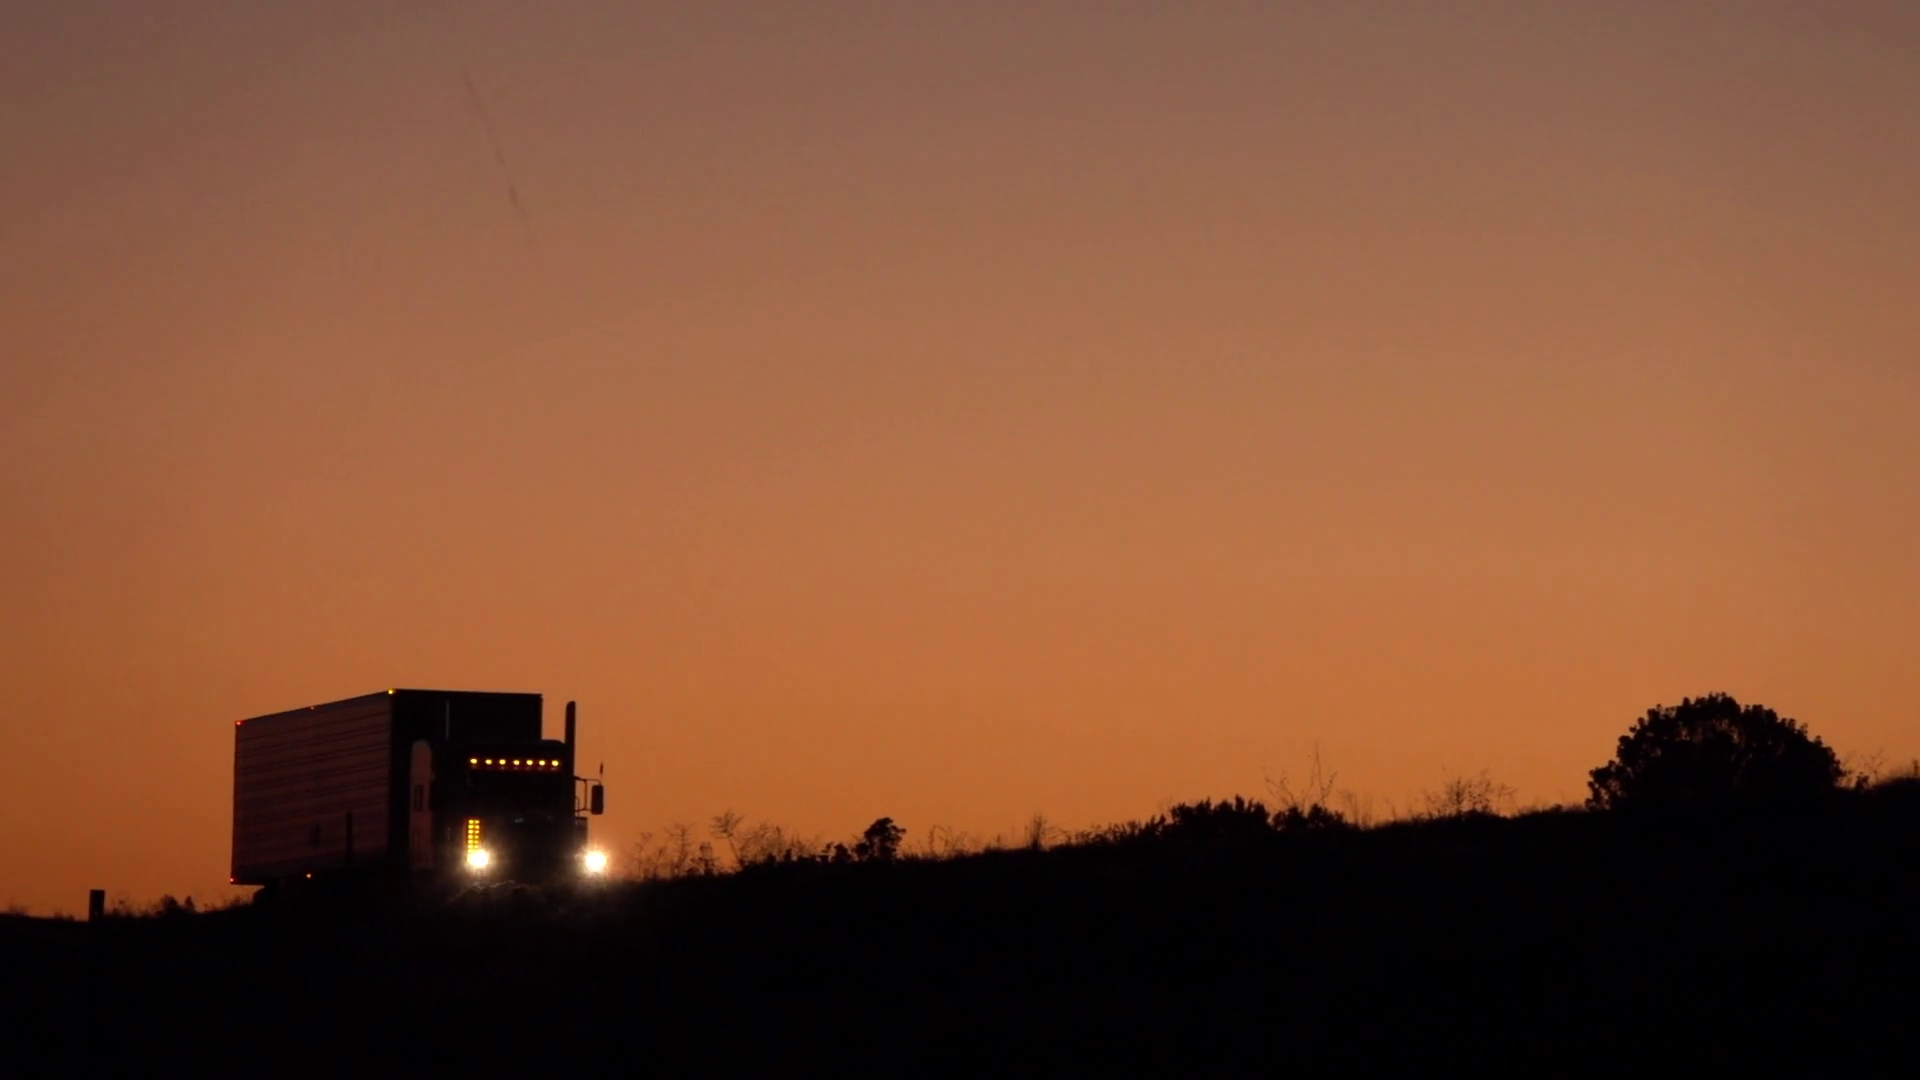 videoblocks-slow-motion-silhouetted-semi-trailer-truck-driving-along-the-highway-in-the-dark_b-mo5cpag_thumbnail-full01